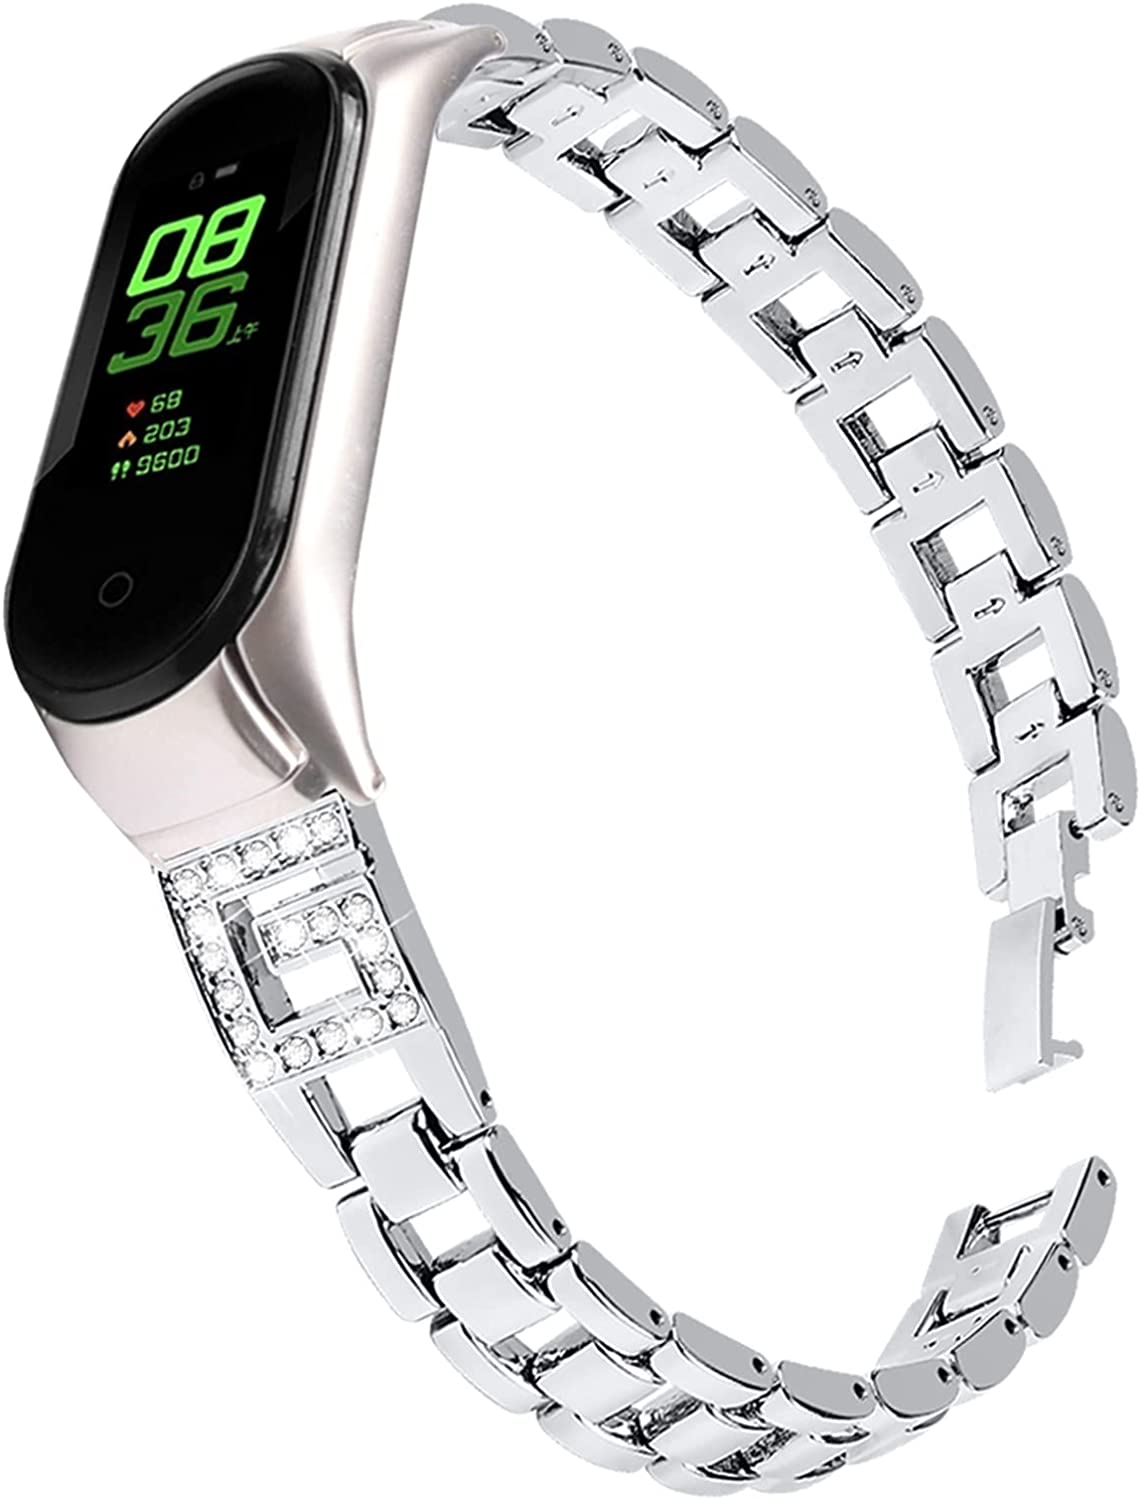 CYTSH Wrist Strap Women Diamond Rhinestone Glitter Metal Bracelet Wristband Replacement Strap for Mi Band 5 6 and 4 and 3 (Color : D, Size : for mi Band 4)